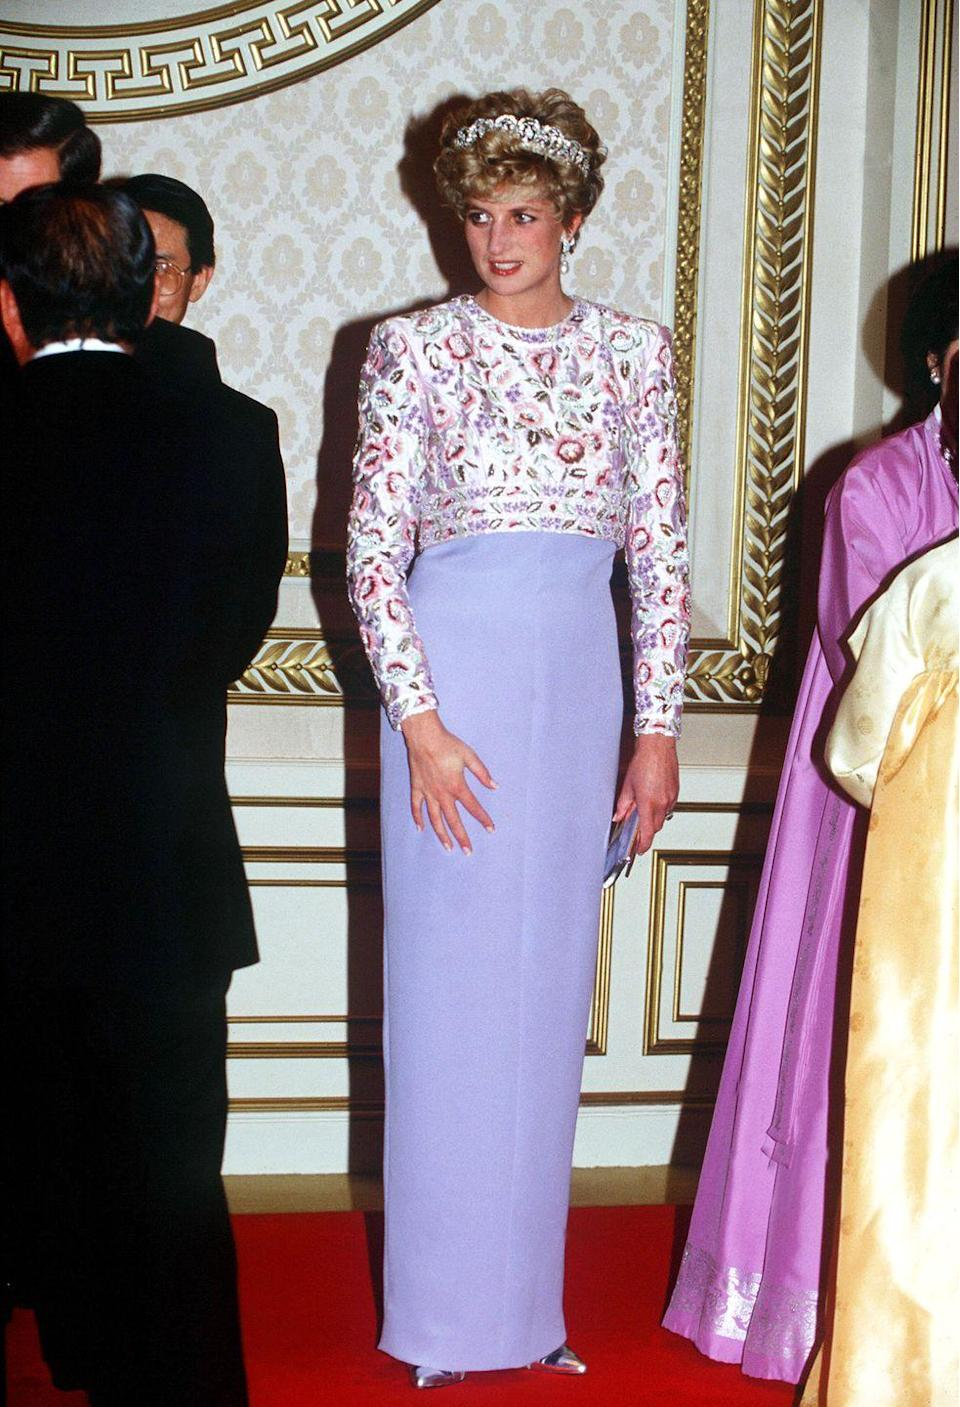 <p>In a purple-and-patterned gown by Catherine Walker paired with the Spencer Tiara at an event in Seoul.</p>